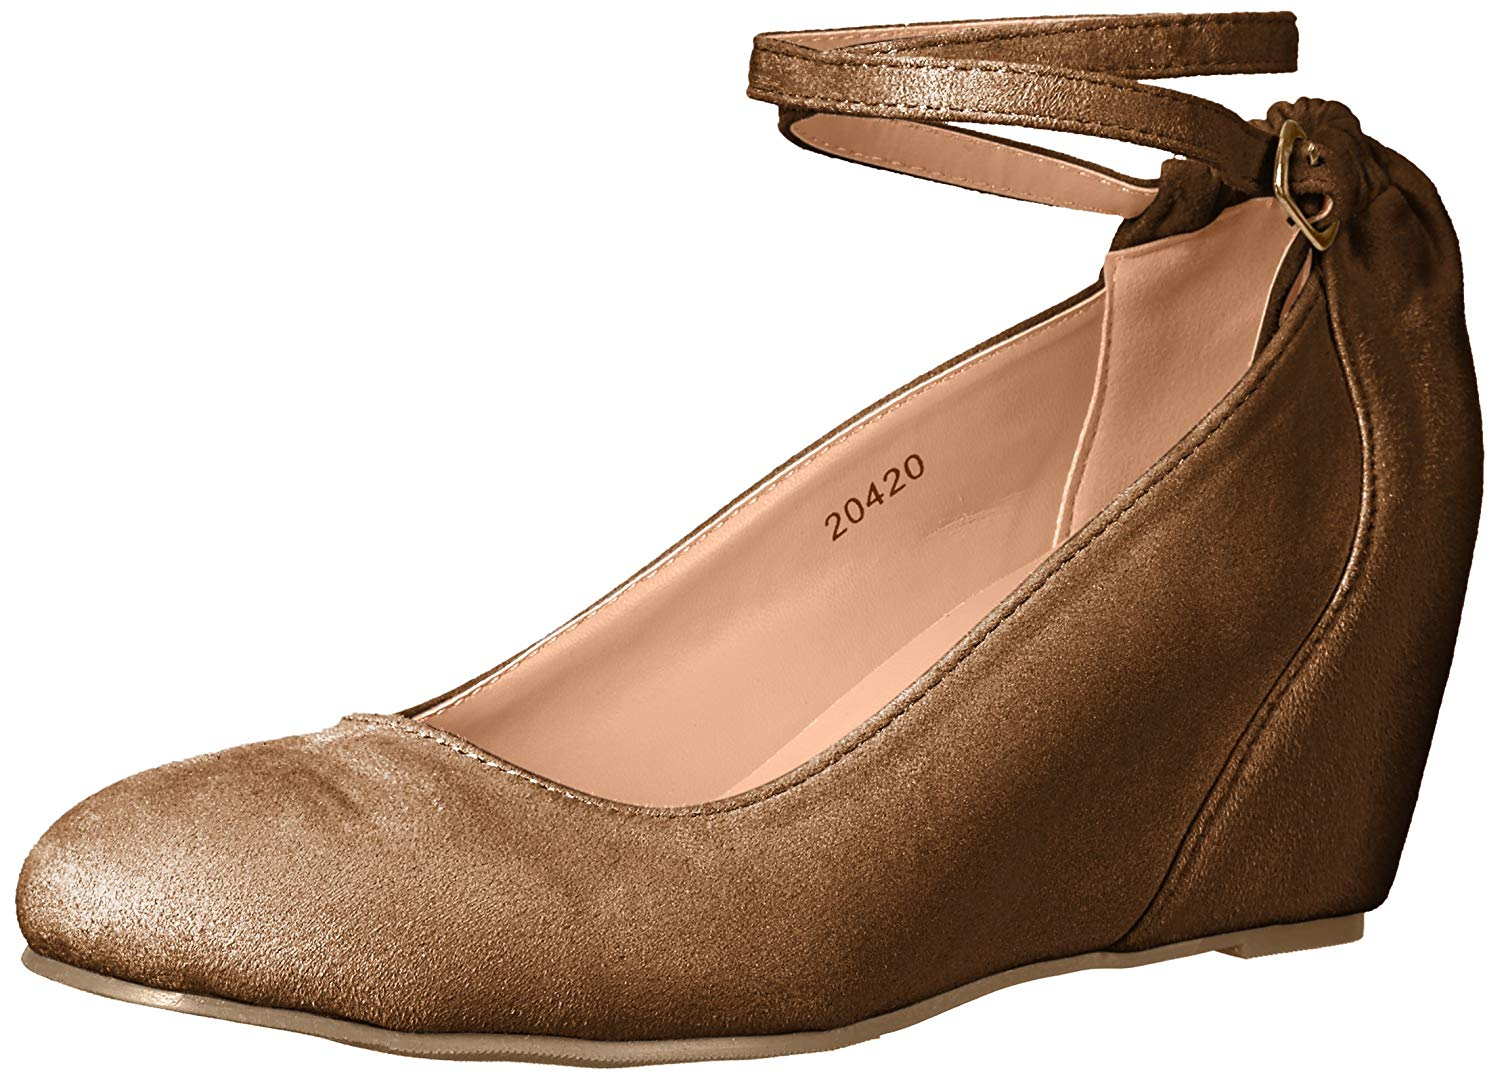 21674f99edd Details about Journee Collection Womens tibby Closed Toe Ankle Strap  D-orsay Pumps